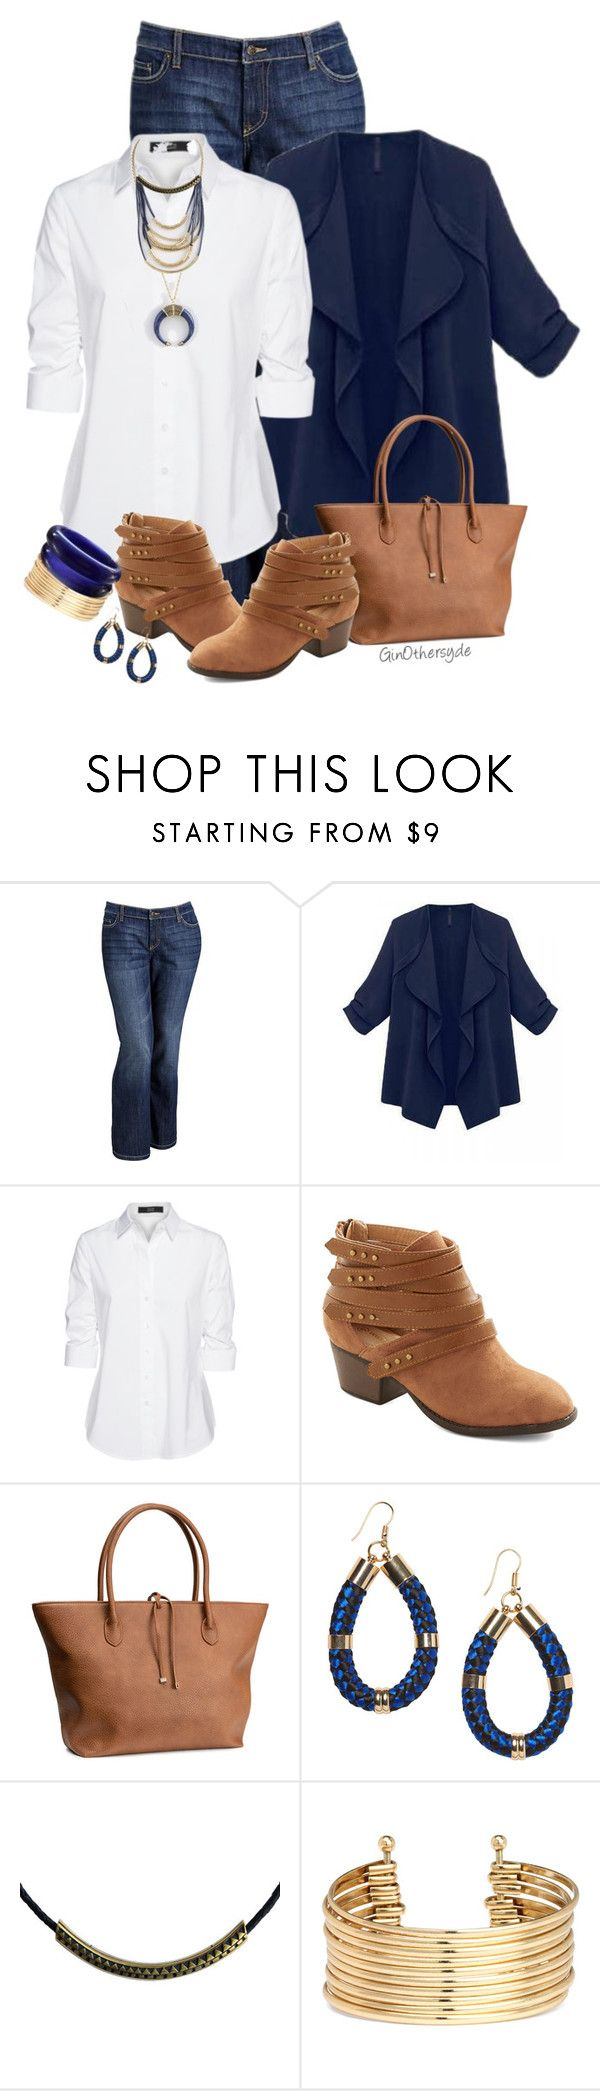 """Curvy Woman - Plus Size"" by ginothersyde ❤ liked on Polyvore featuring Old Navy, Steffen Schraut, H&M, Monki, Zoemou and 333"